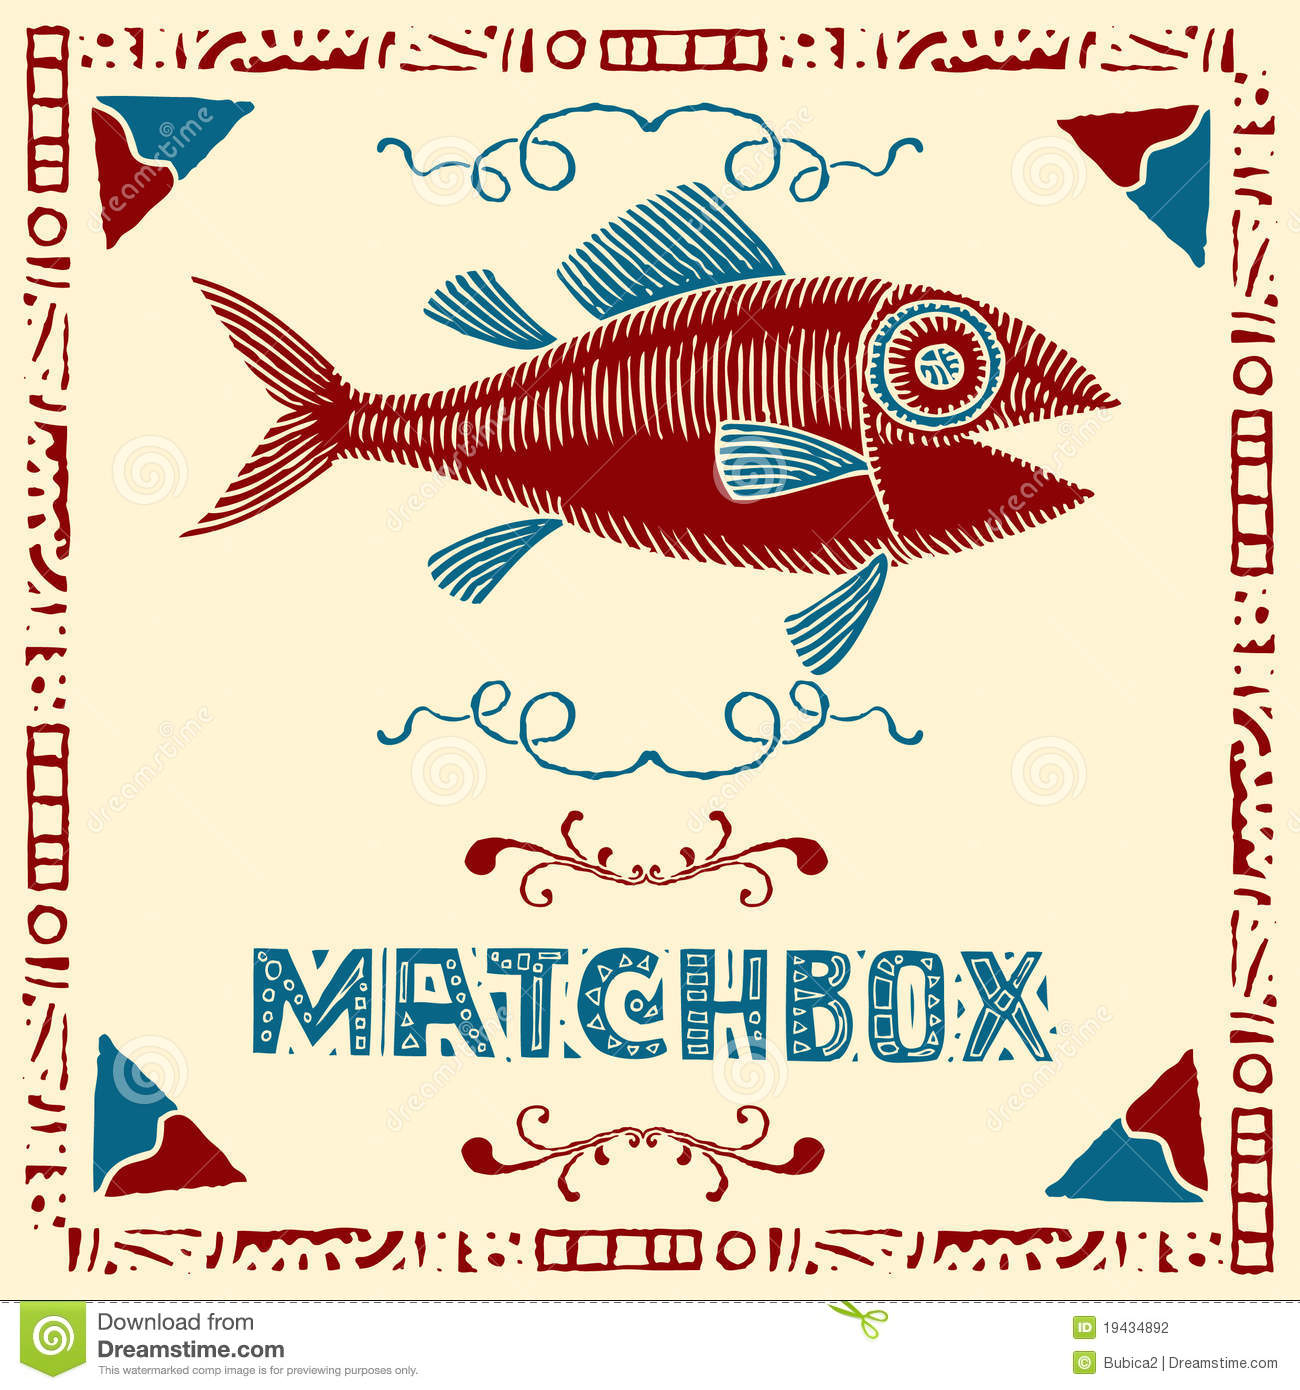 Tuna fish matchbox label stock vector. Illustration of meal - 19434892